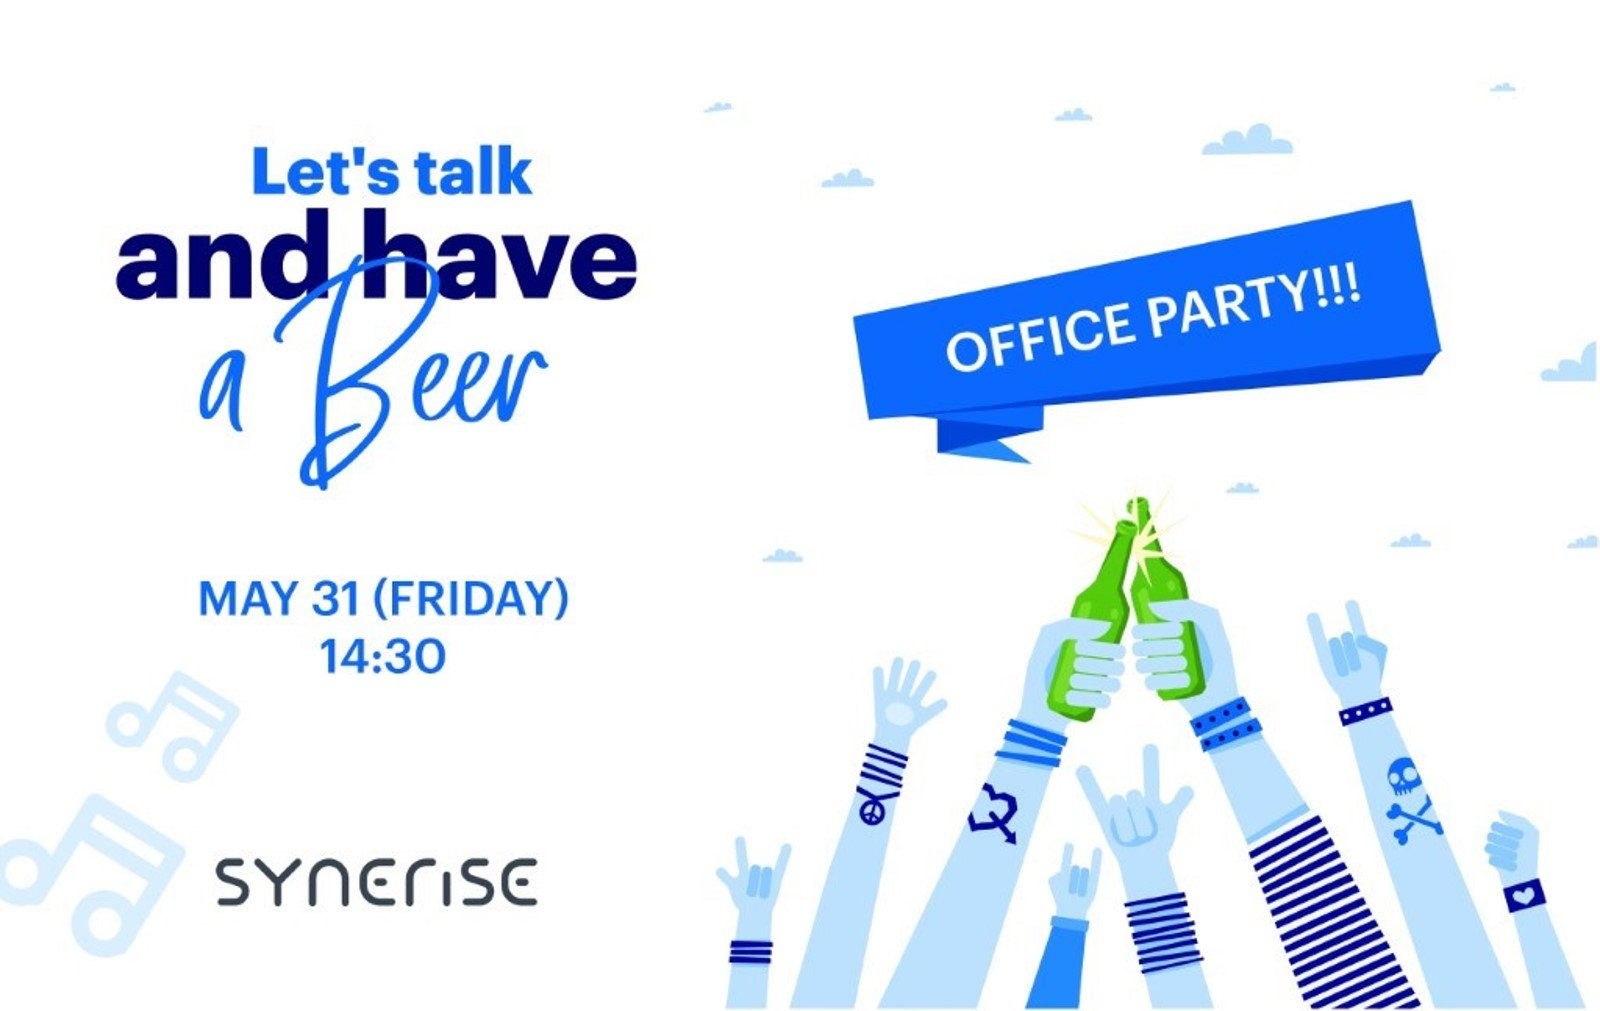 Official poster from synerise event Let's talk and have a beer